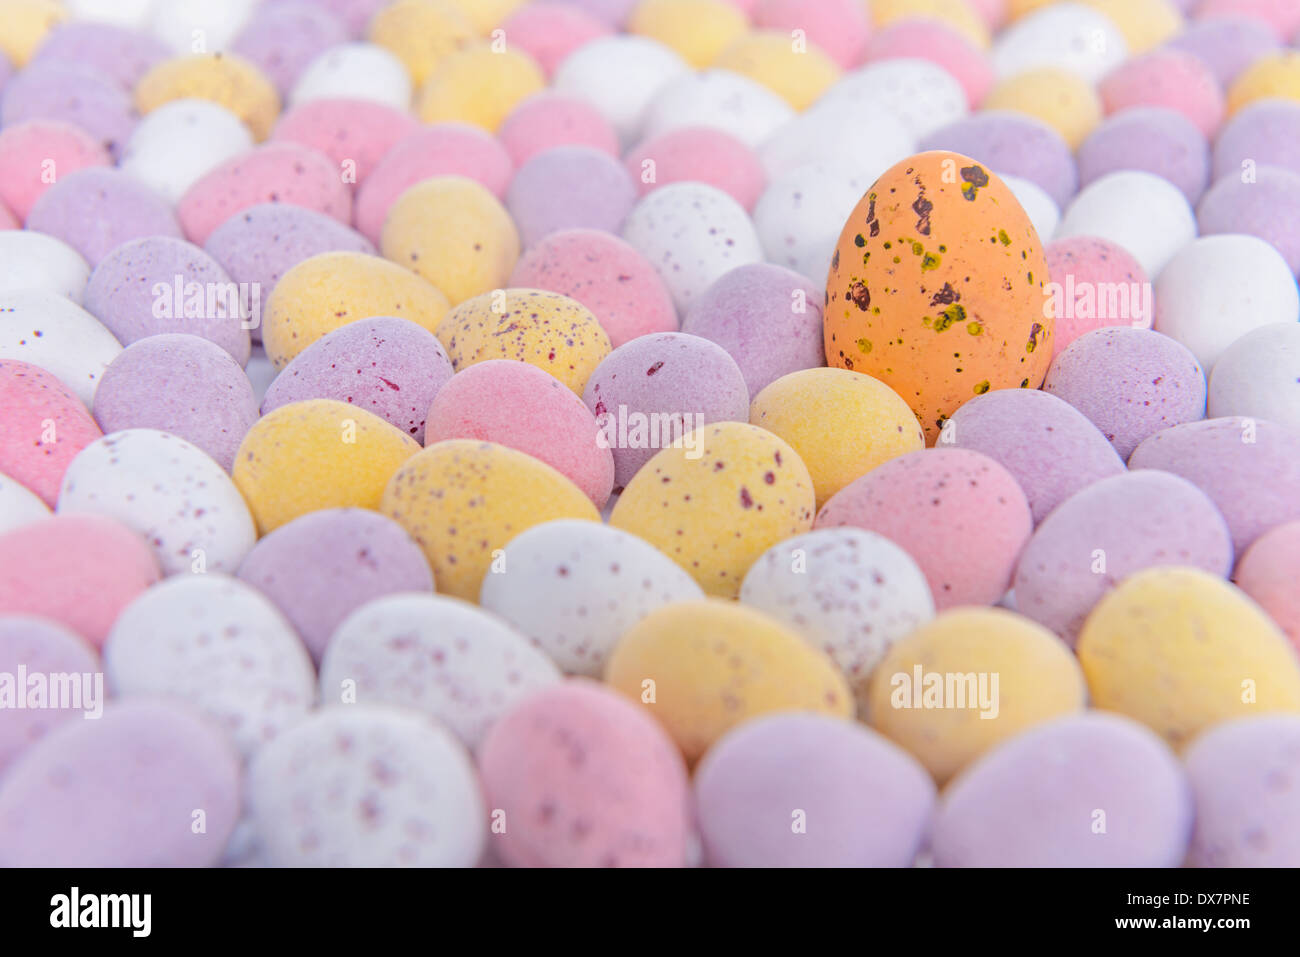 Lots of mini candy covered chocolate Easter eggs with one standing out from the crowd. - Stock Image